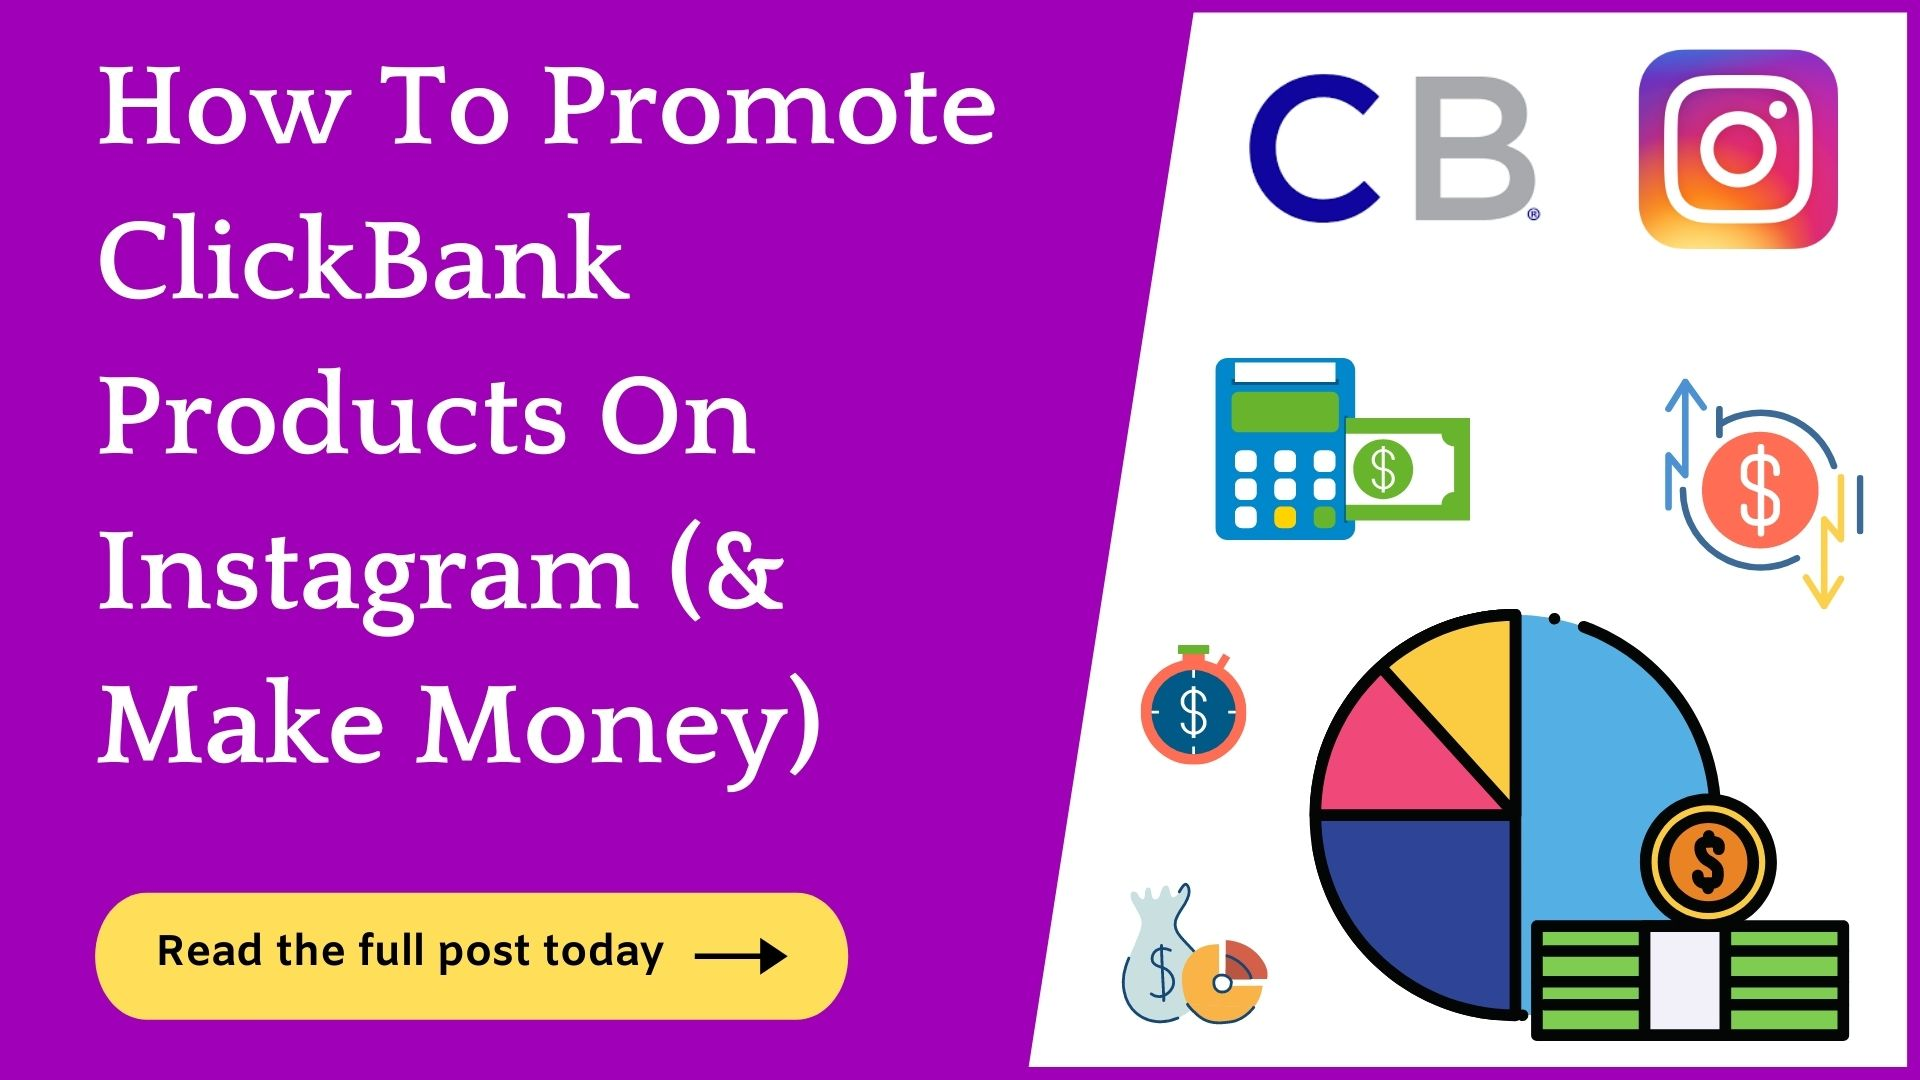 promote clickbank products on Instagram